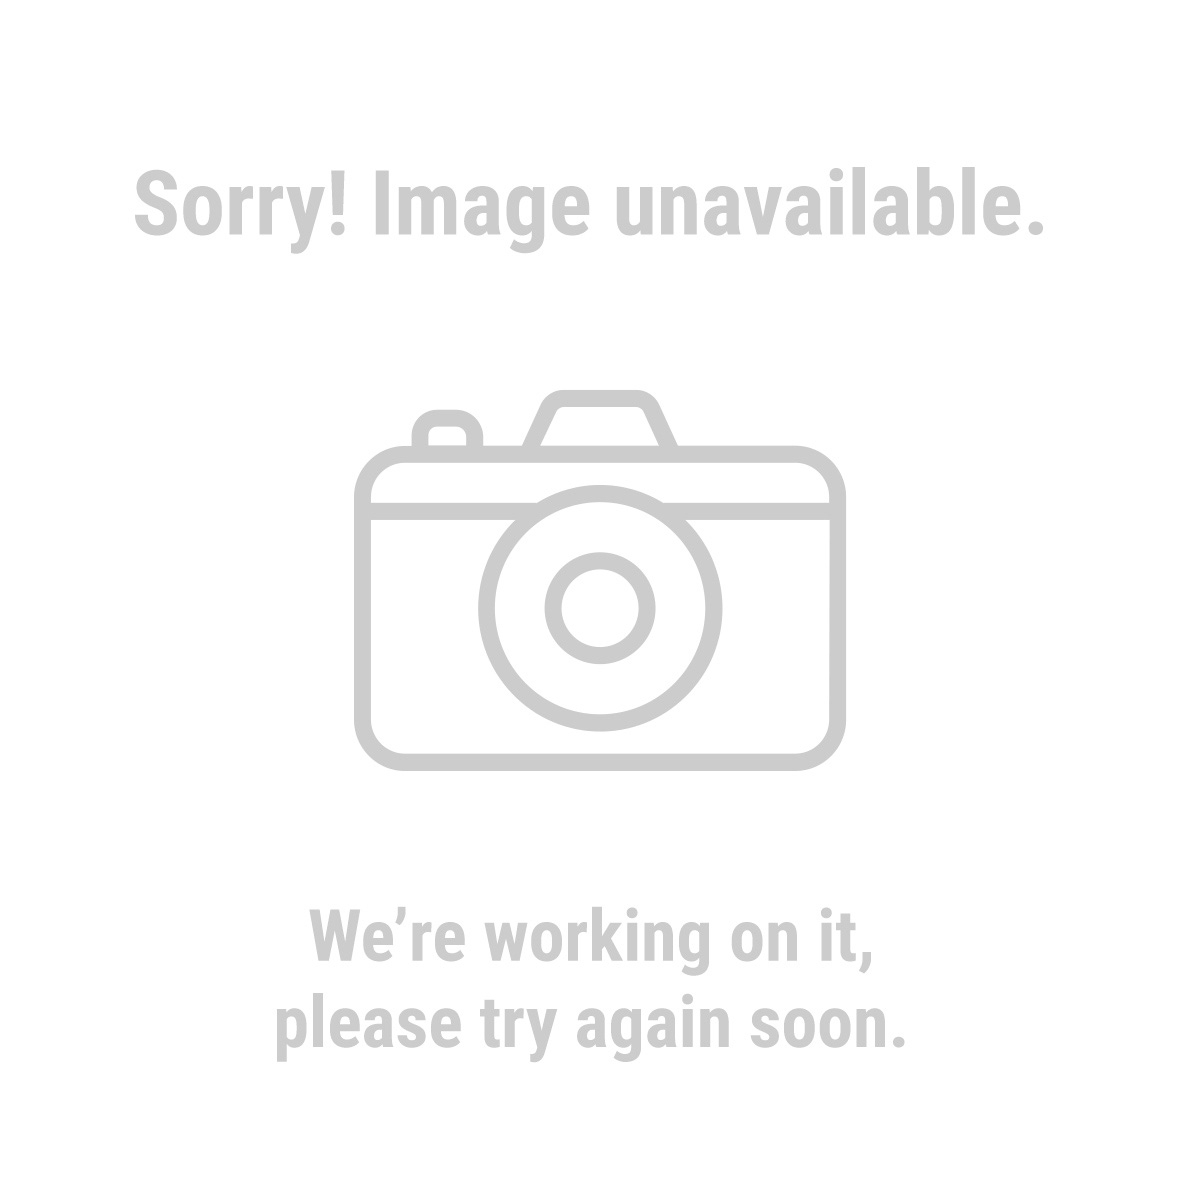 Chicago Electric Power Tools 41445 100 Ft. x 12 Gauge Outdoor Extension Cord